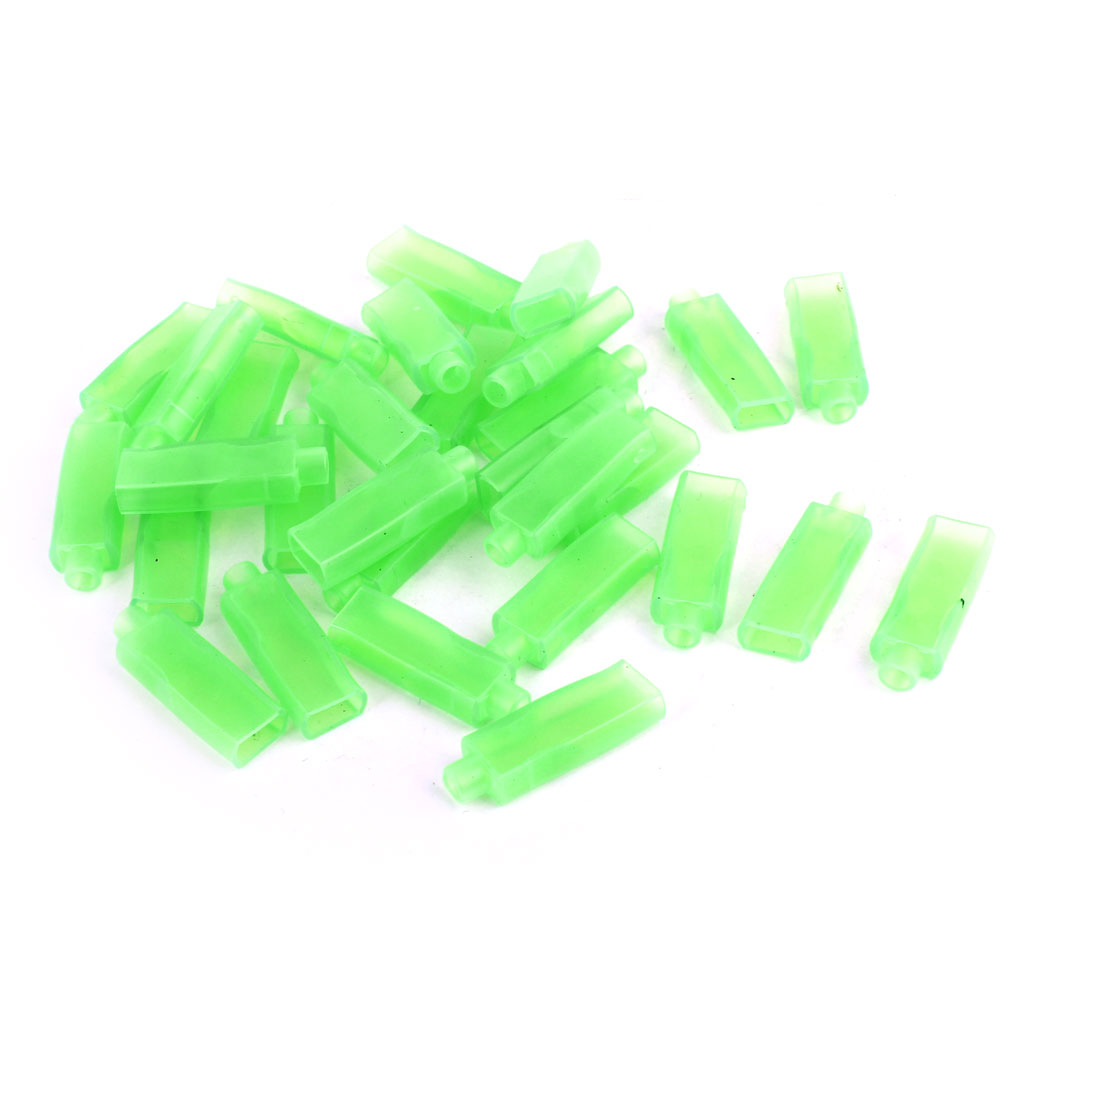 30 Pcs Auto Green Soft PVC Connectors 6.3mm Double Female Terminal Sleeves